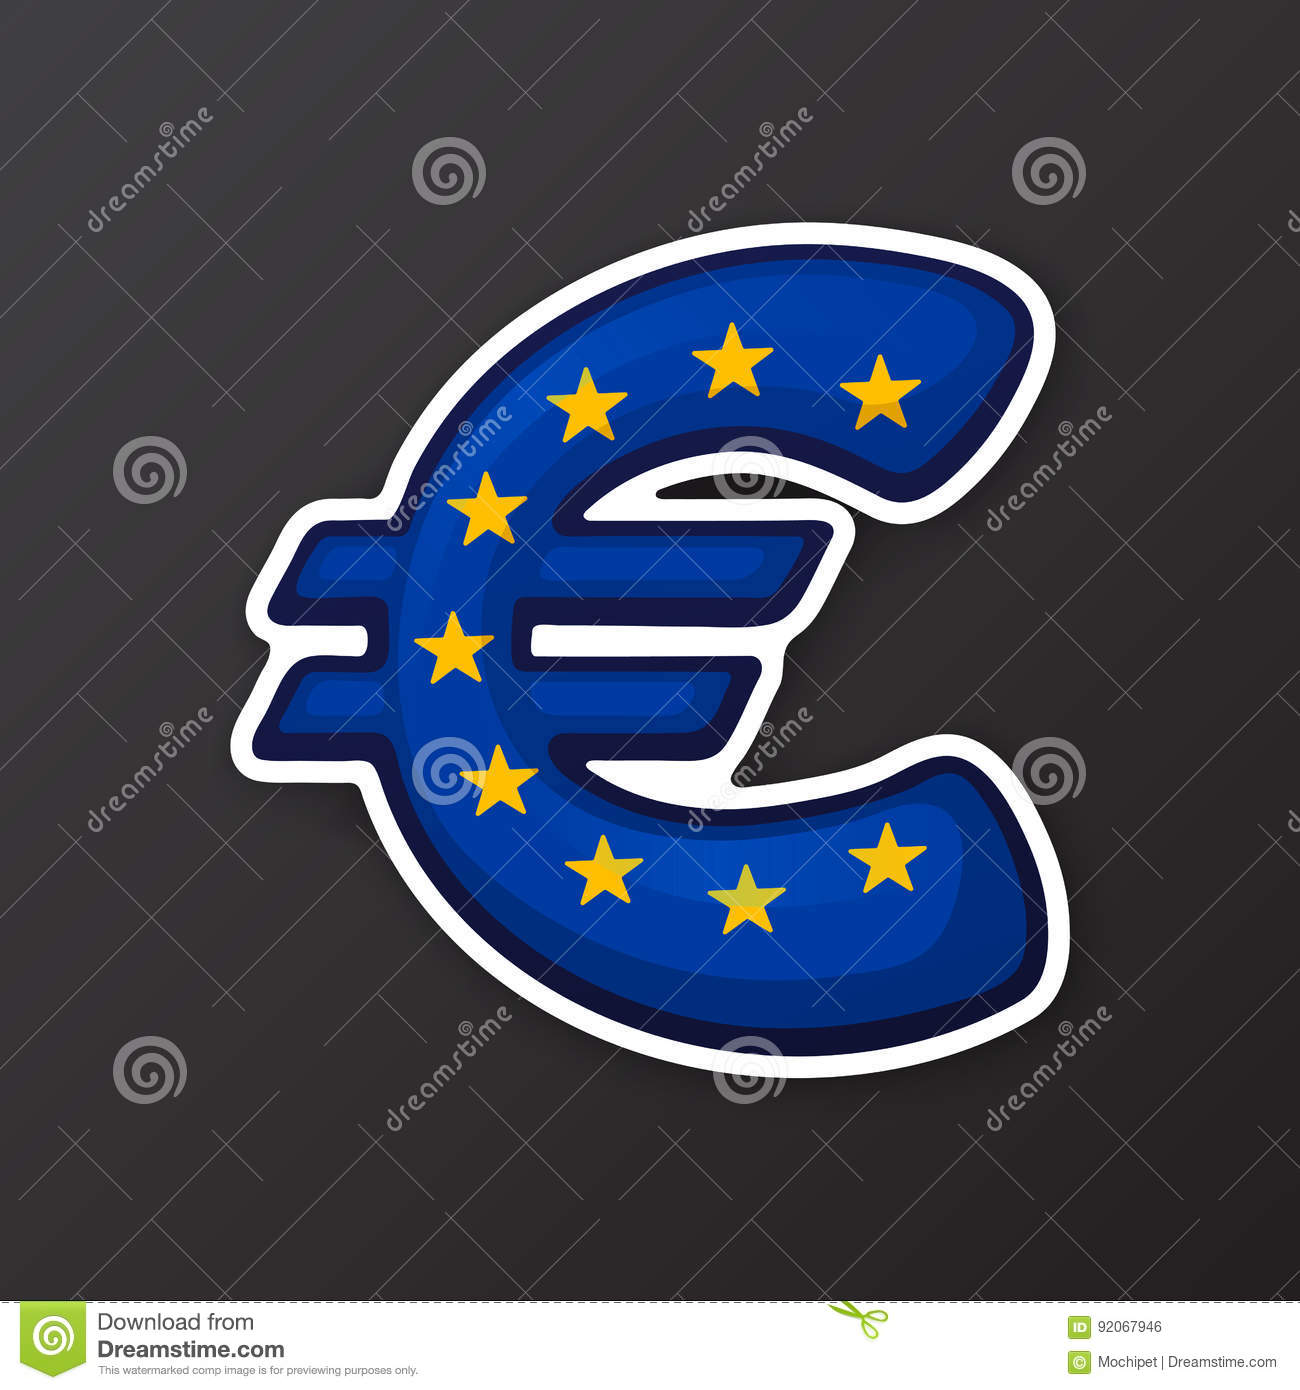 Sticker Euro Sign In Flag Colors Of European Union Stock Vector